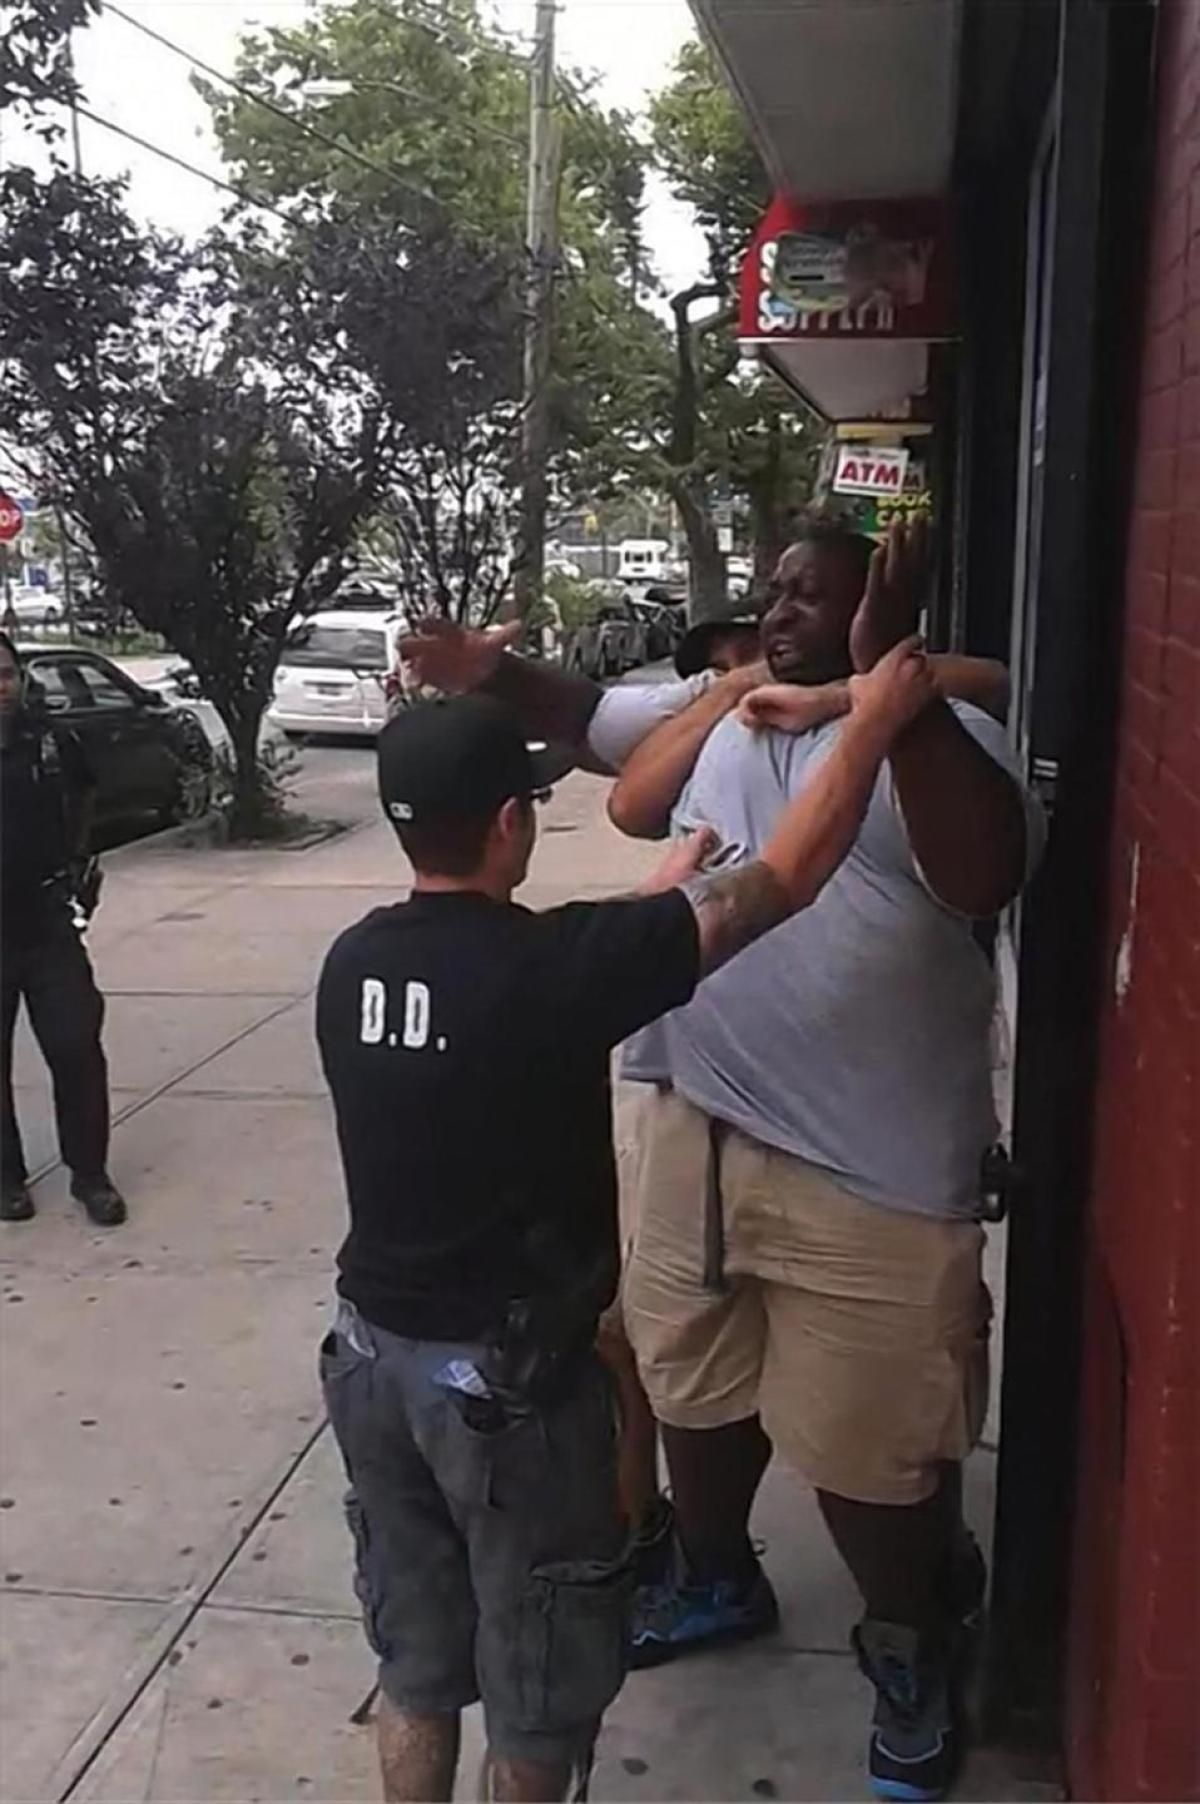 NYPD investigation of Eric Garner death is complete, but Bratton won't take action until fed probe wraps up